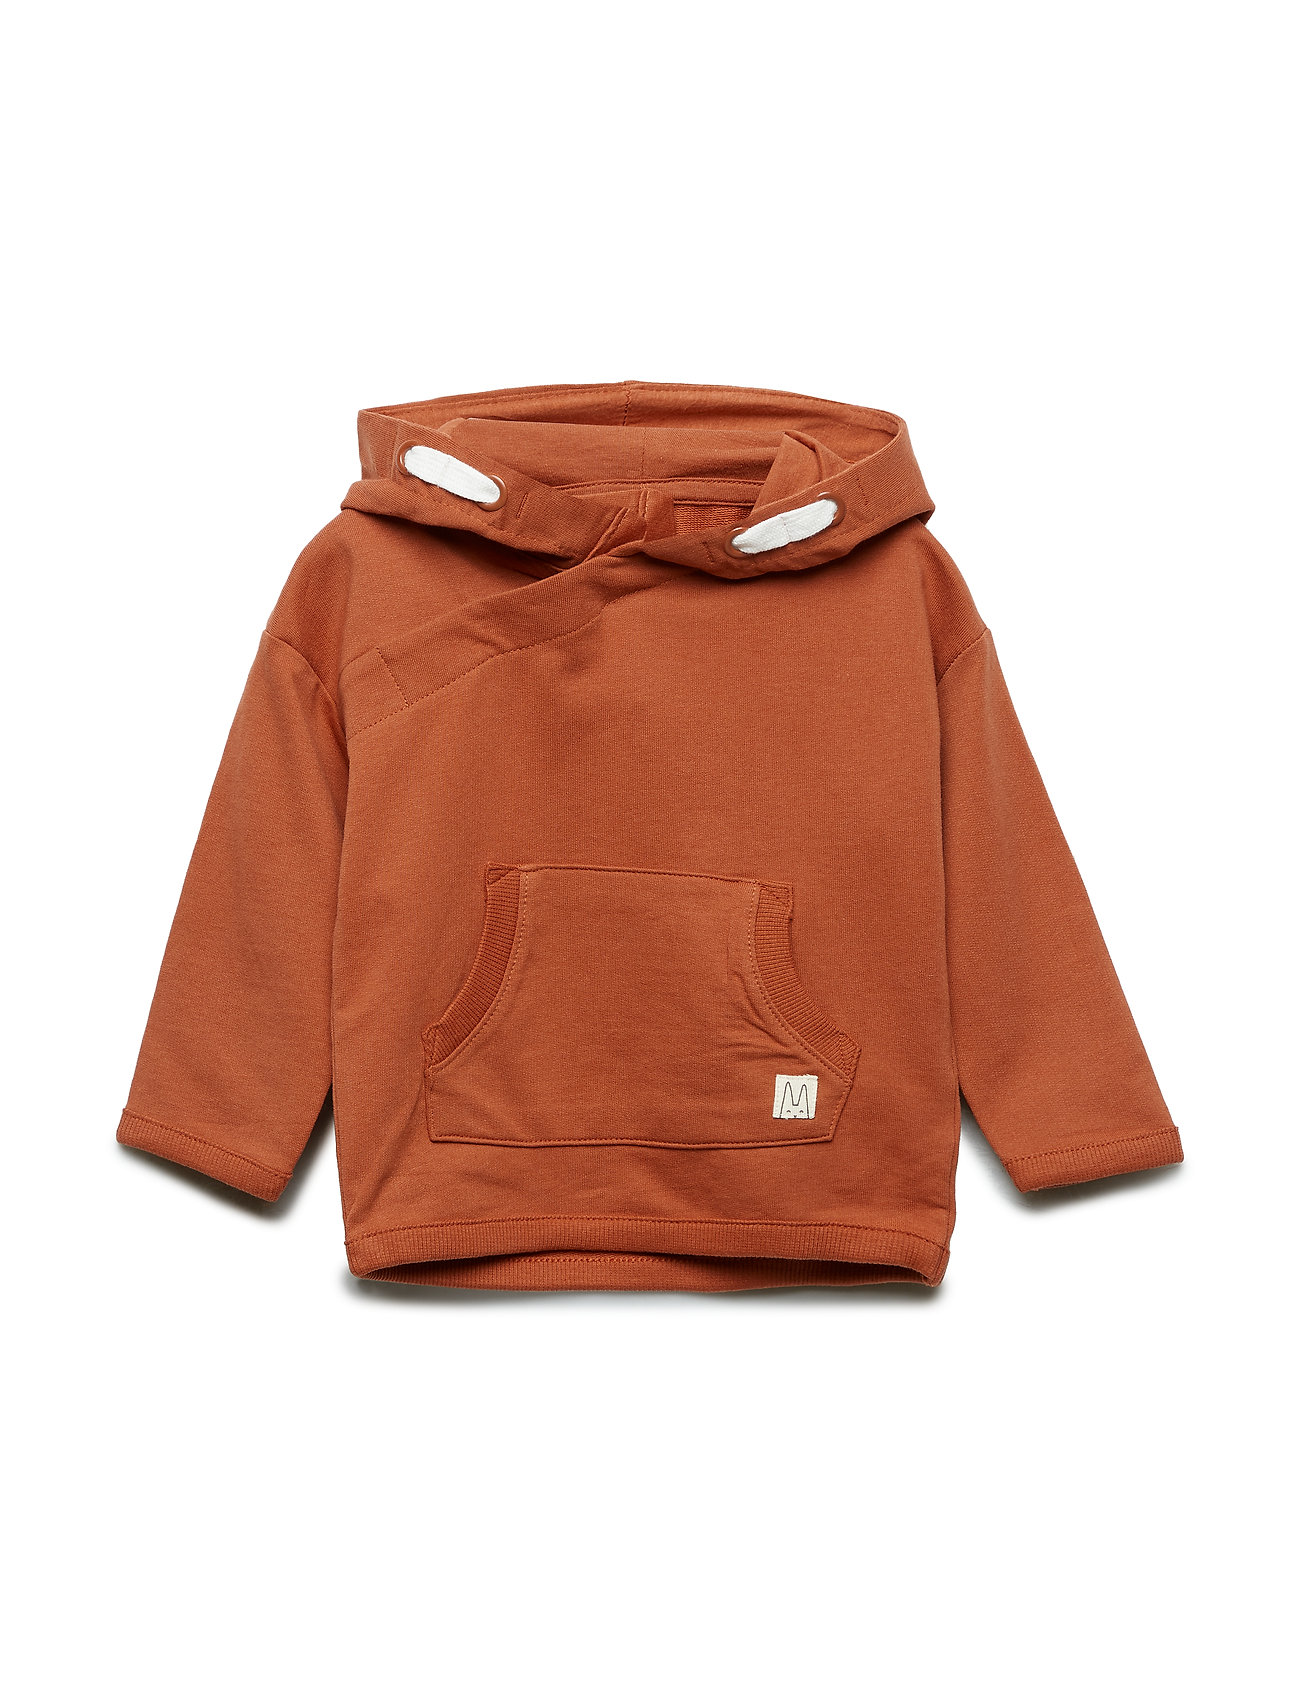 Lindex Hooded sweatshirt with double pocket - DUSTY RED